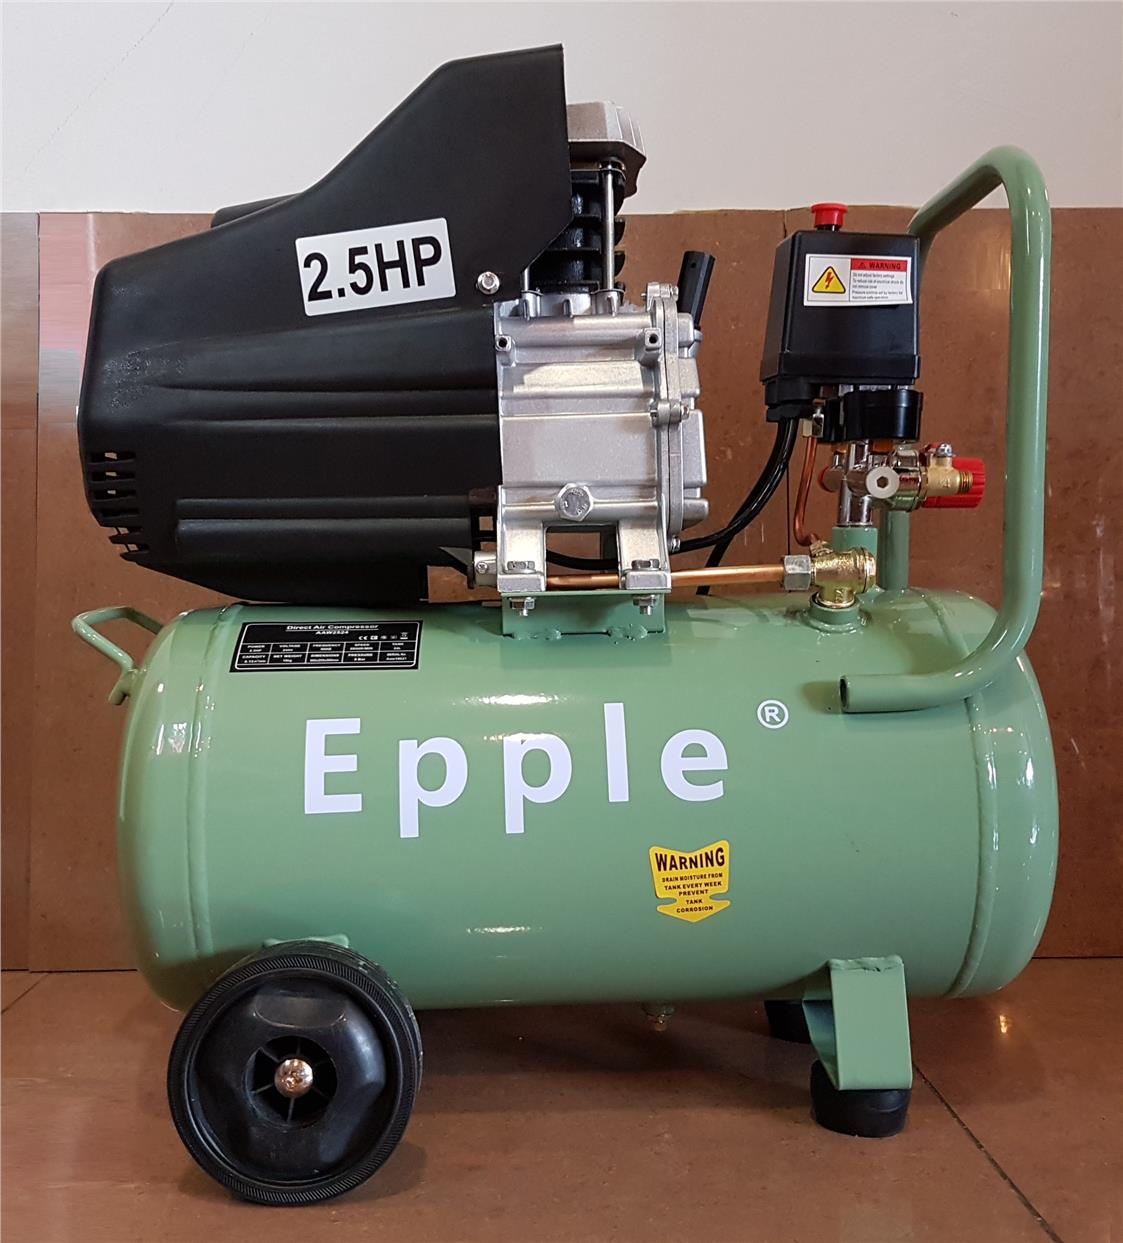 Epple AAW-2524 2.5hp 24L Air Compressor ID339713